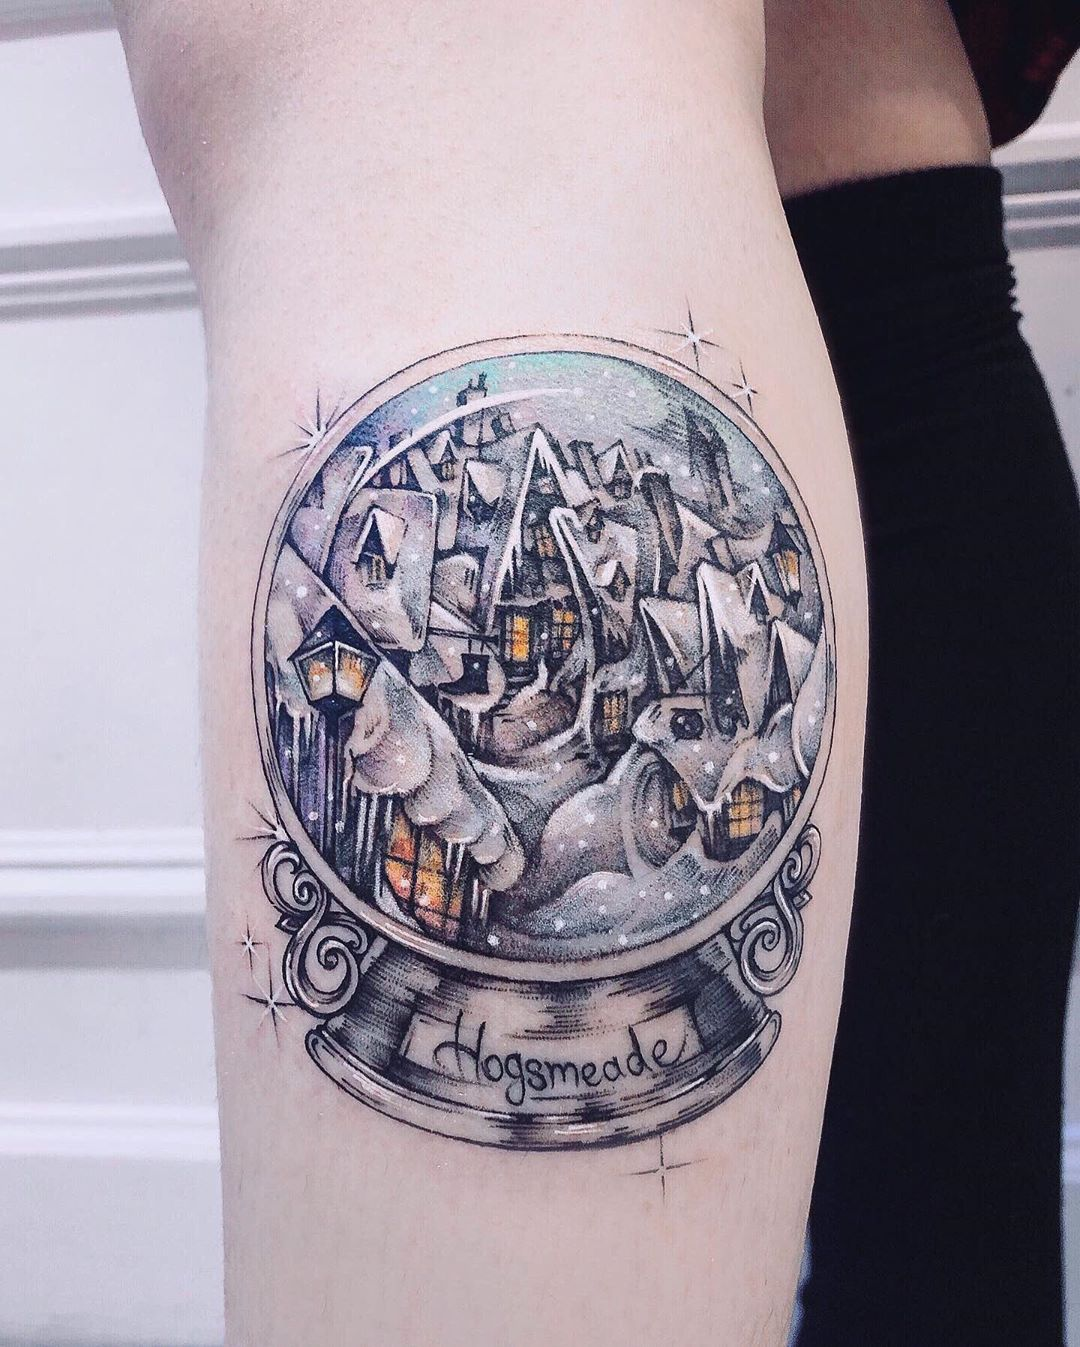 Tattoo Artist On Instagram Hogsmeade Snowball Done At Coupdefoudre Tattoo Balzers 25 11 28 1 Harry Potter Tattoos Tattoos Harry Potter Tattoo Unique